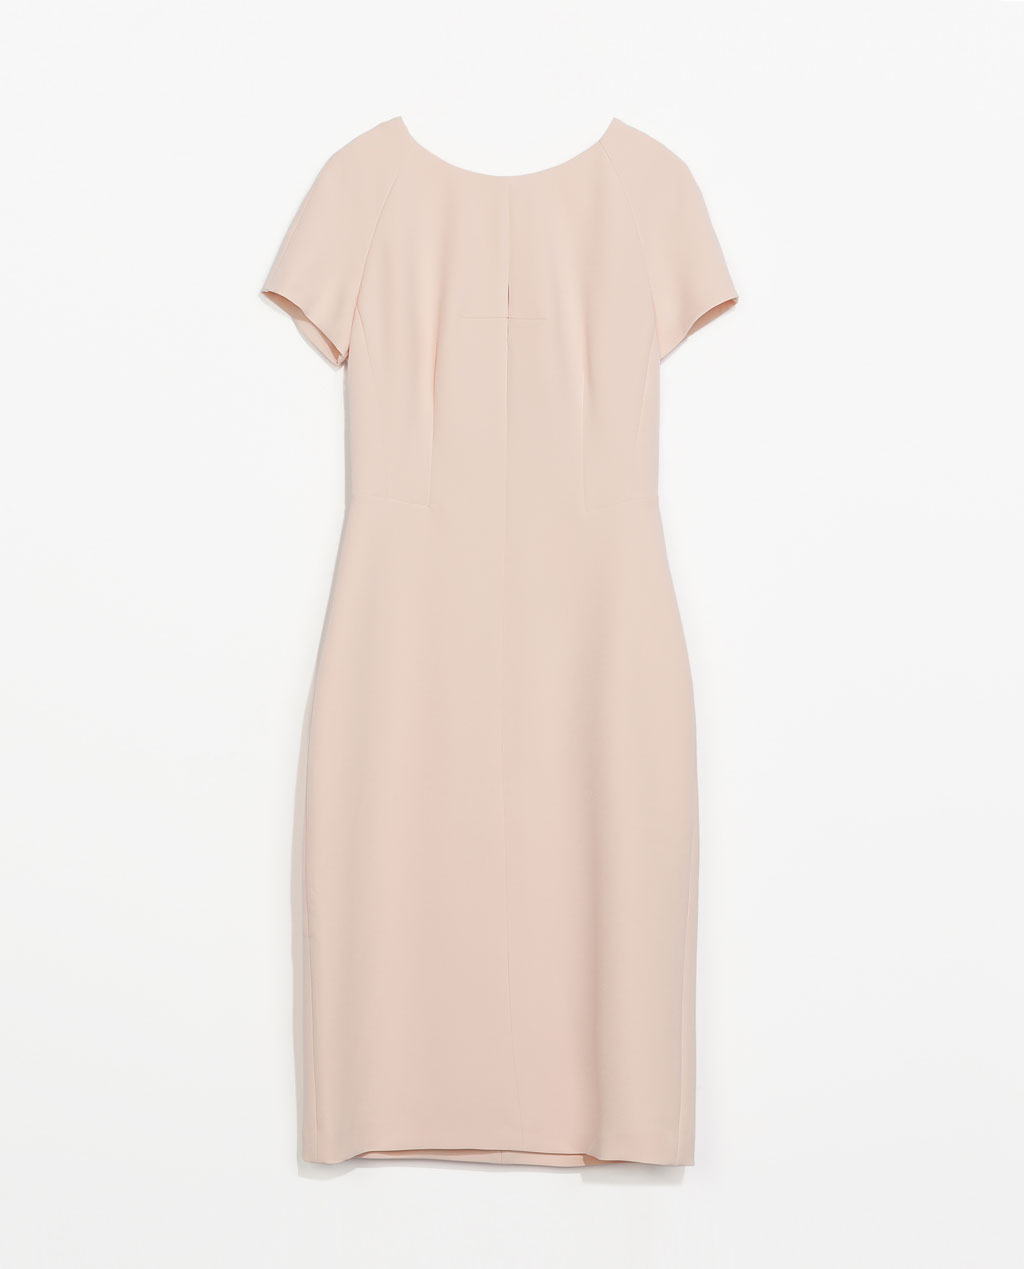 Shift Dress - style: shift; neckline: round neck; sleeve style: raglan; fit: tailored/fitted; pattern: plain; back detail: low cut/open back; predominant colour: nude; occasions: evening, creative work; length: on the knee; fibres: polyester/polyamide - stretch; sleeve length: short sleeve; pattern type: fabric; texture group: other - light to midweight; season: s/s 2014